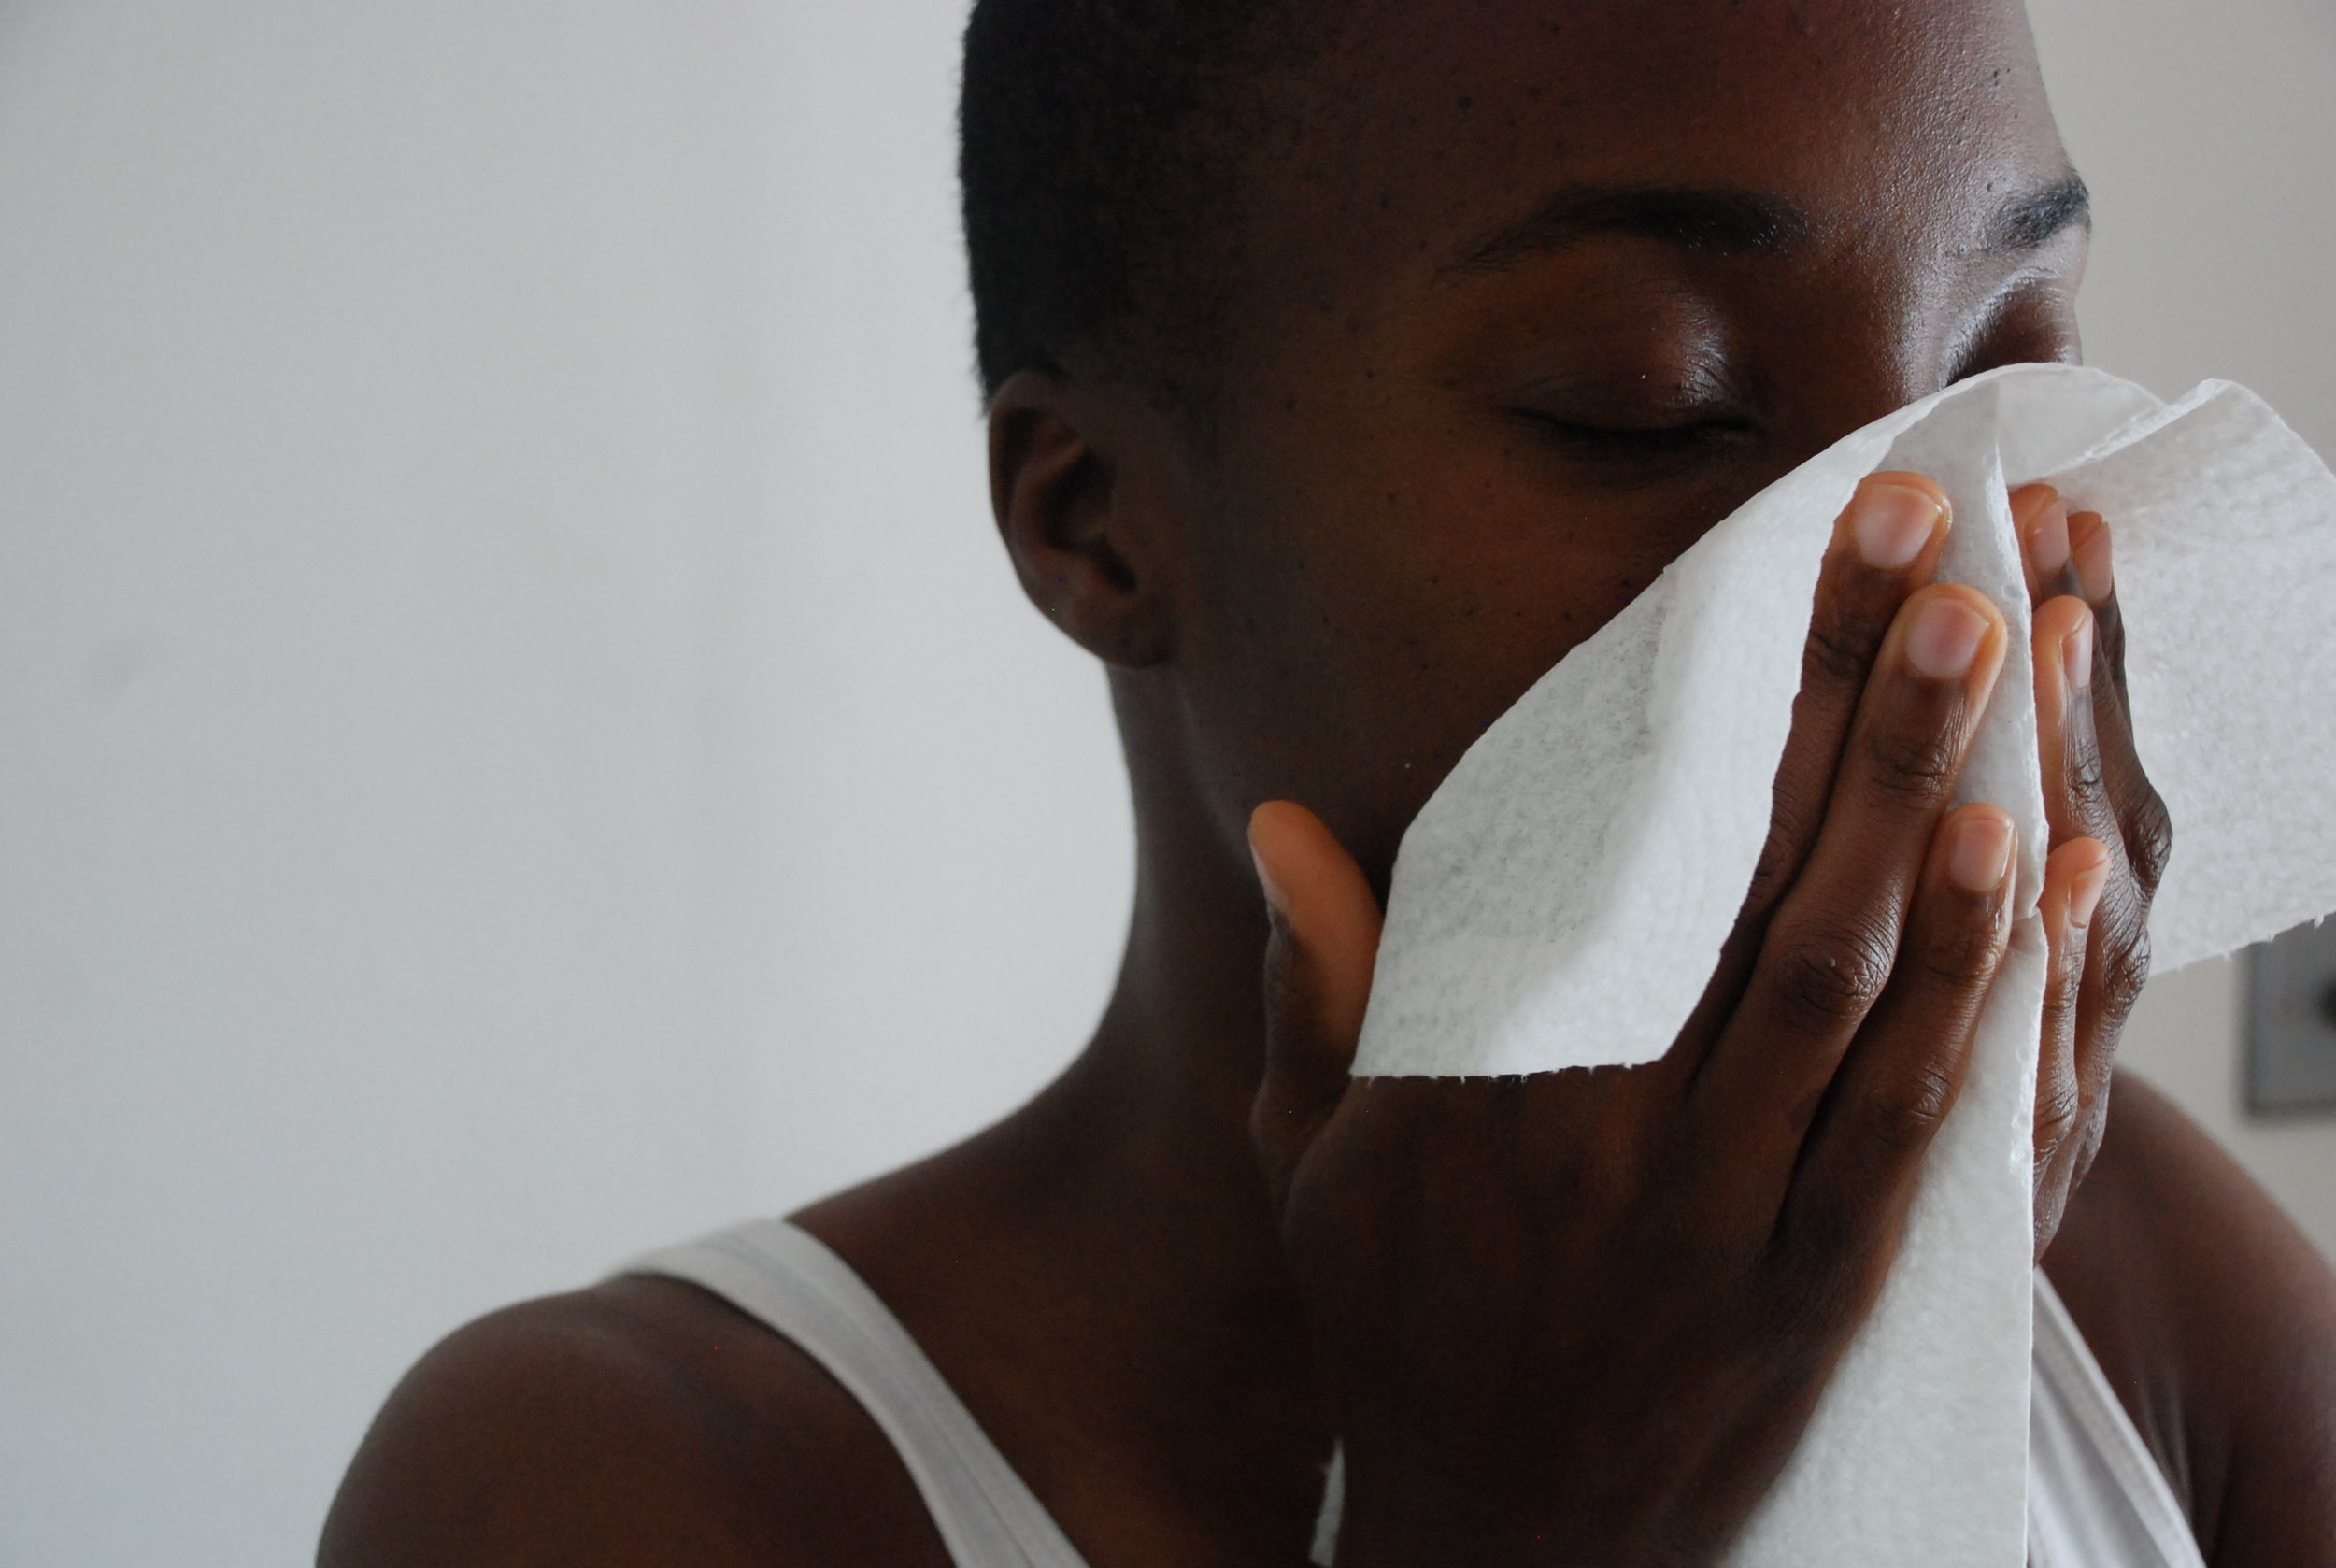 Using a disposable paper towel to dry the skin can help prevent the spread of bacteria. This can be useful if you are prone to sensitive or problem skin.